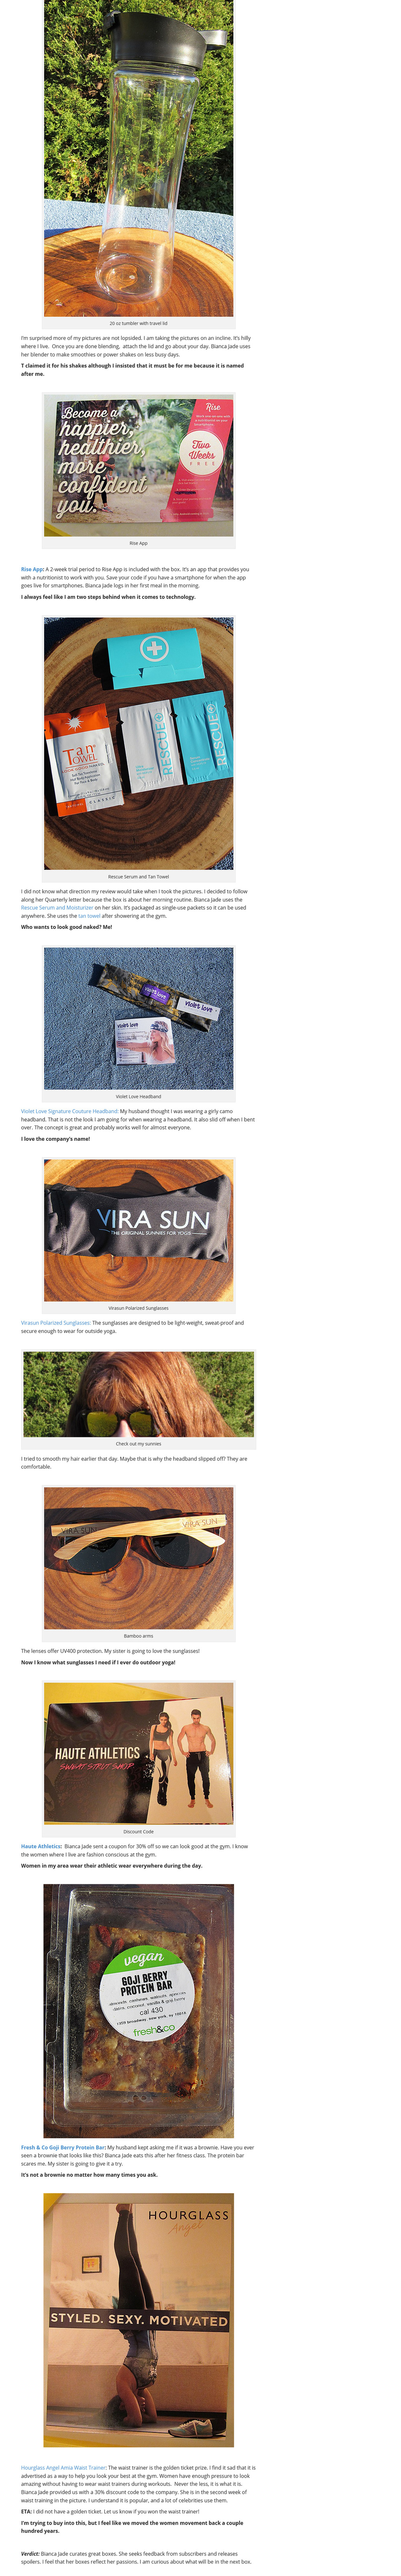 Vira Sun | Subscriptionista